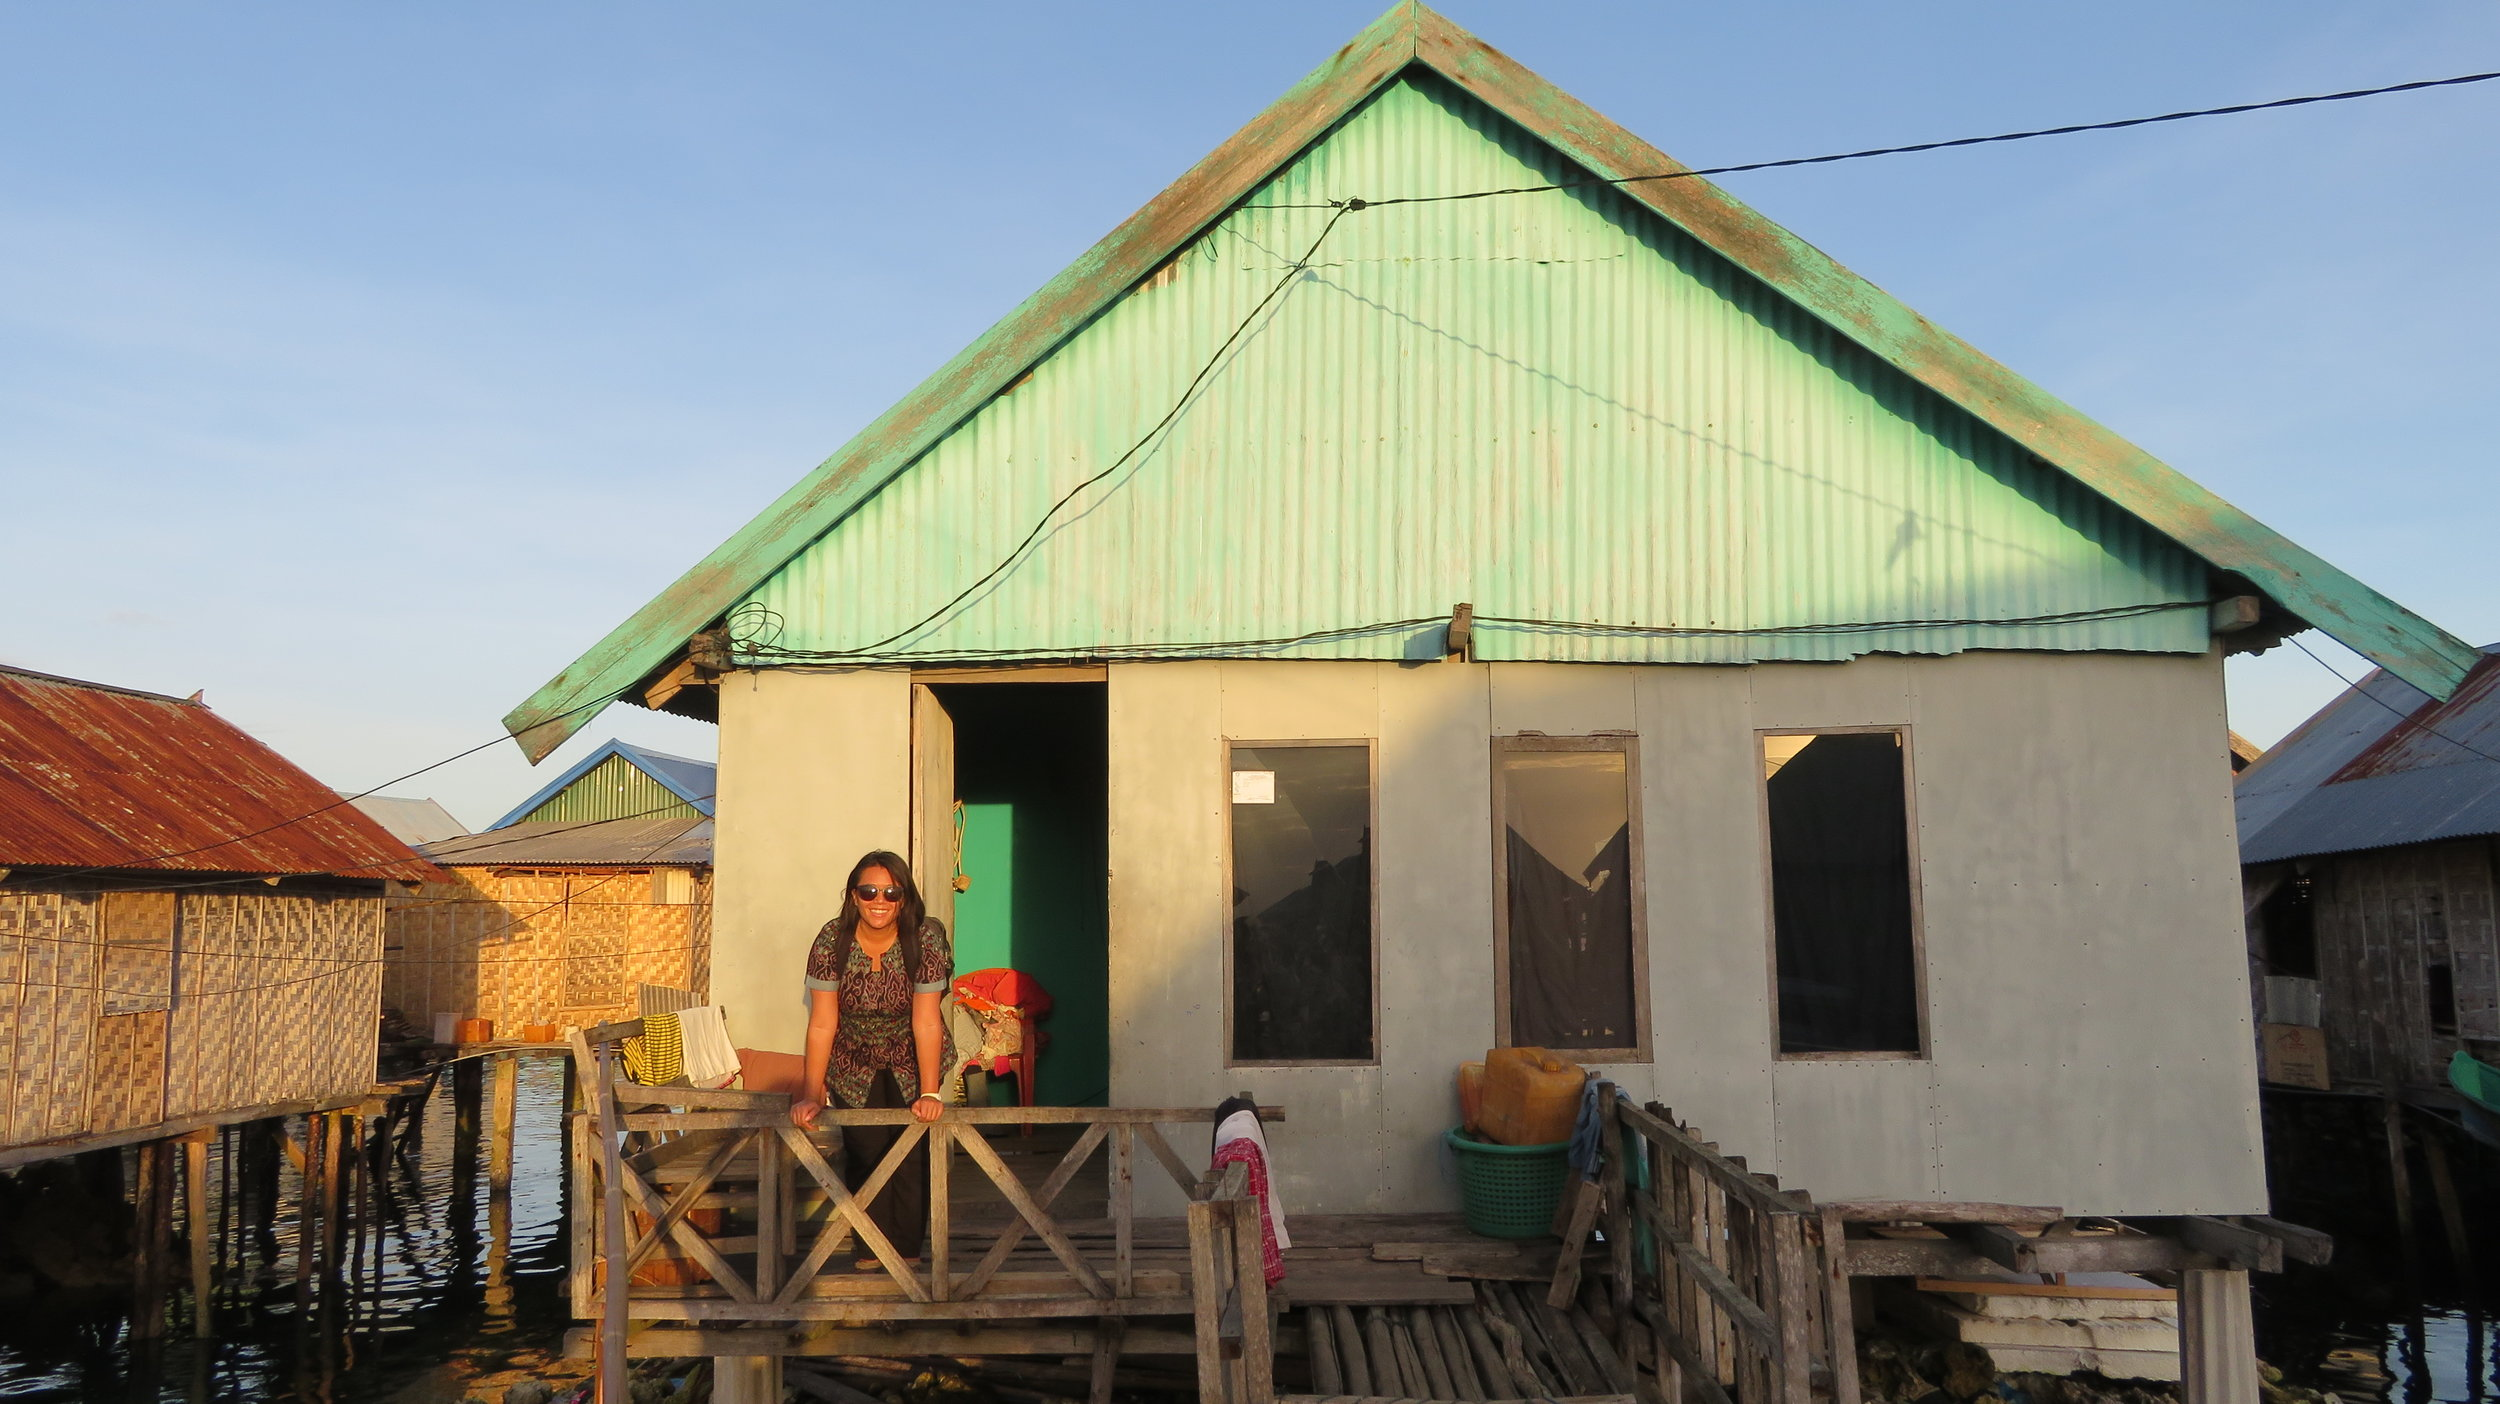 The sunsetting on a house in the infamous Bajo Mola Village in Wakatobi National Park, Southeast Sulawesi, Indonesia